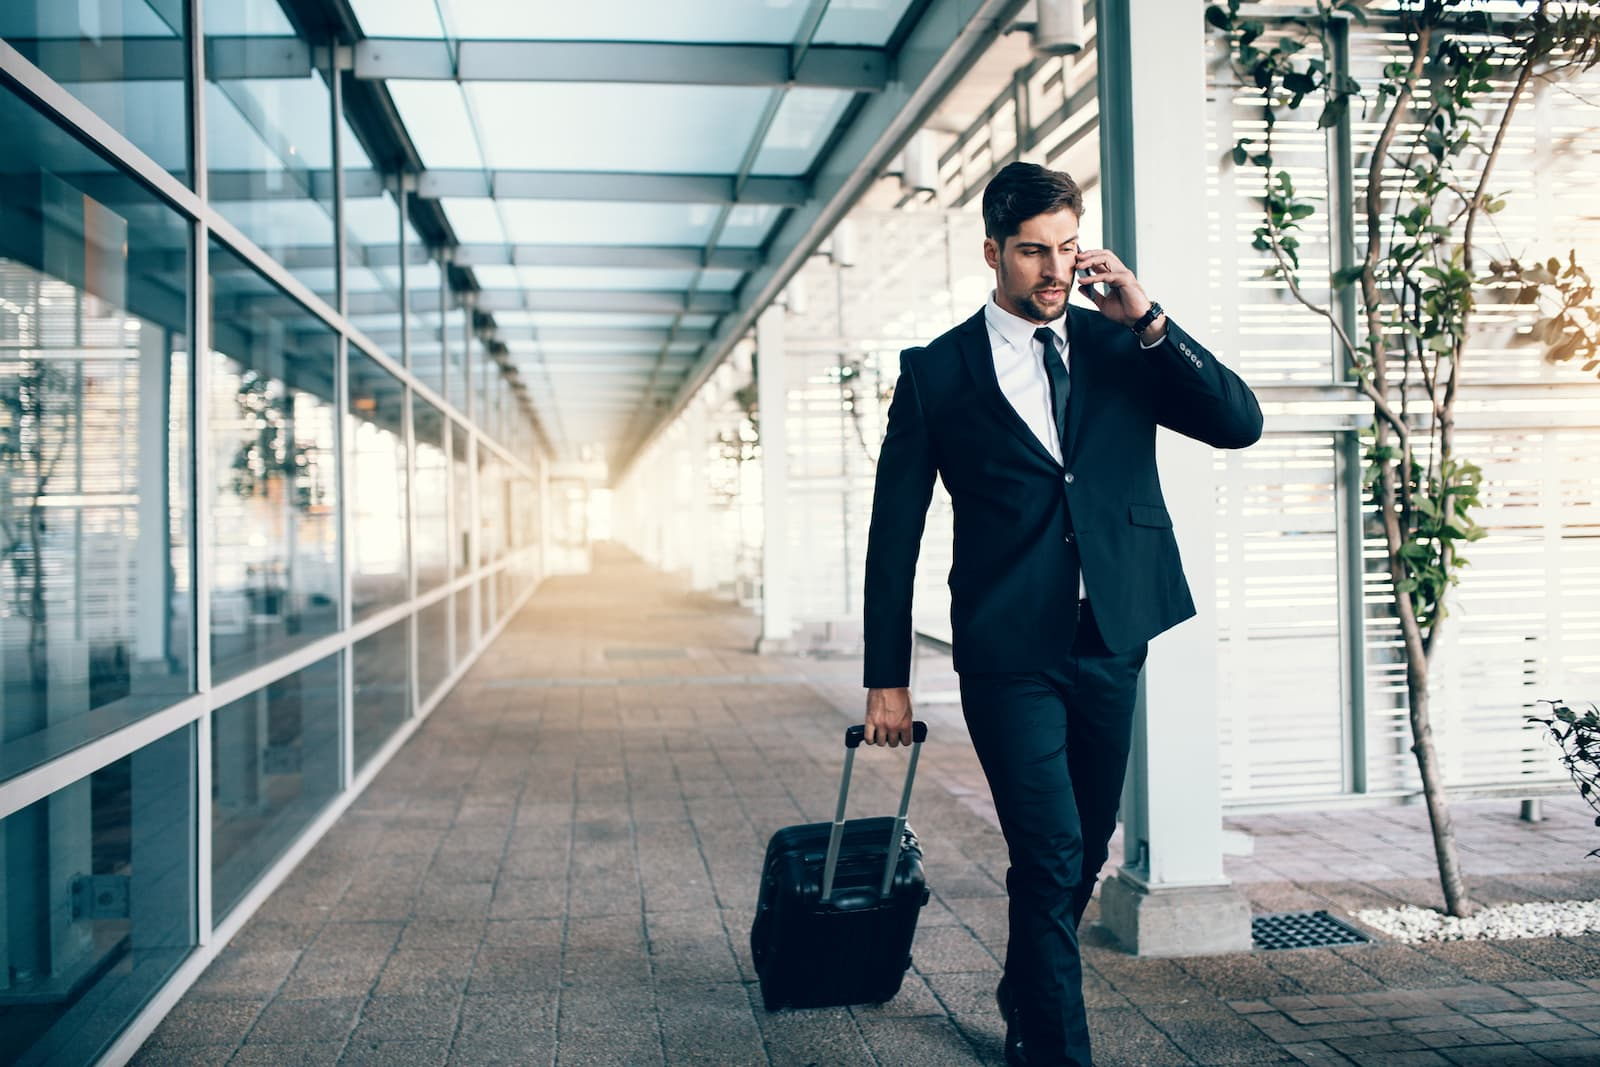 Businessman walking through airport during a short-term travel stay